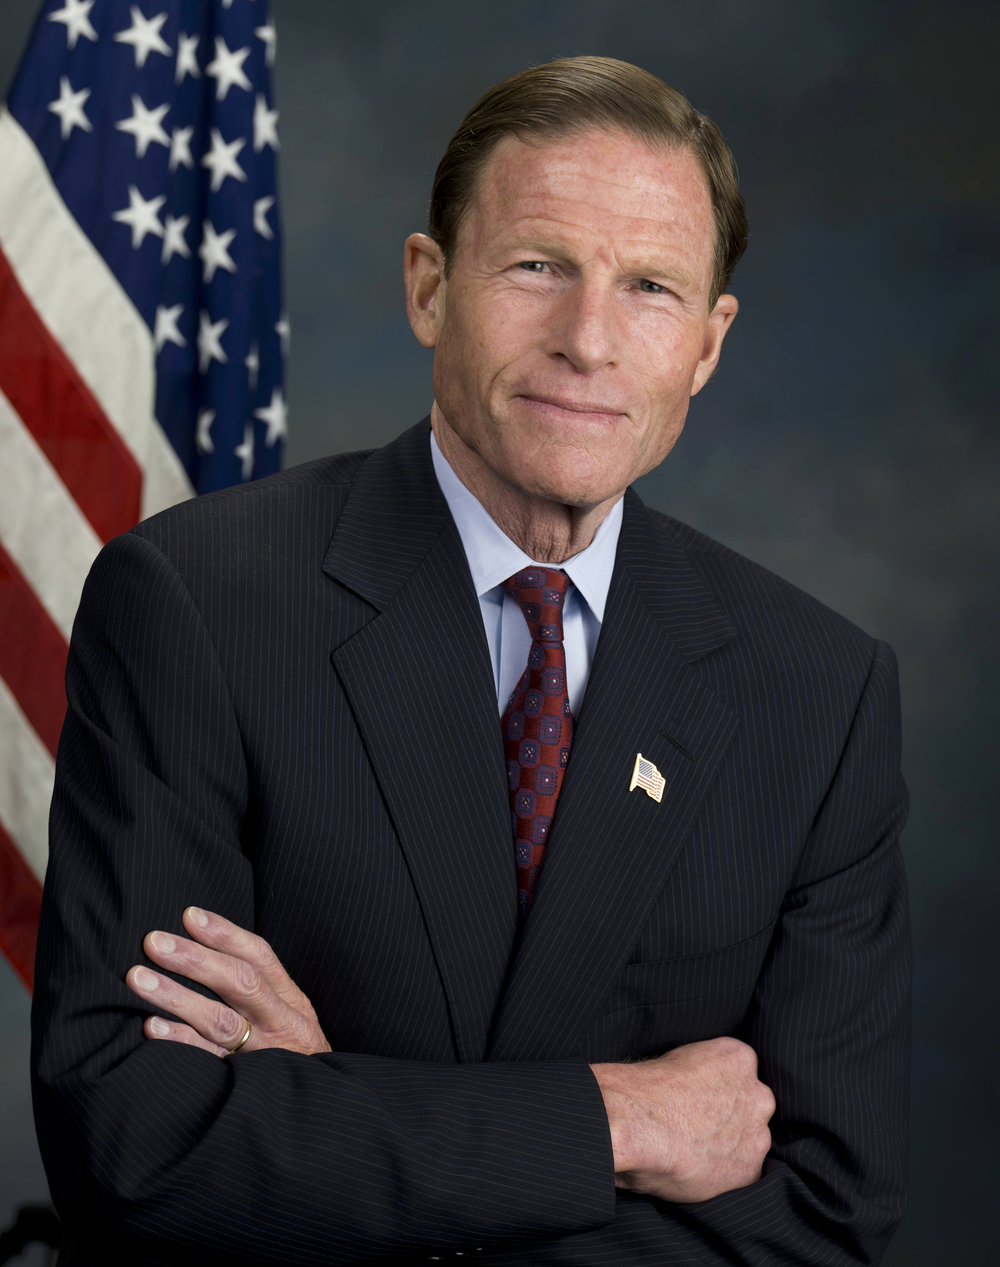 Senator Richard Blumenthal (D) Co-Sponsor of S 299 Freedom to Travel to Cuba Act of 2015